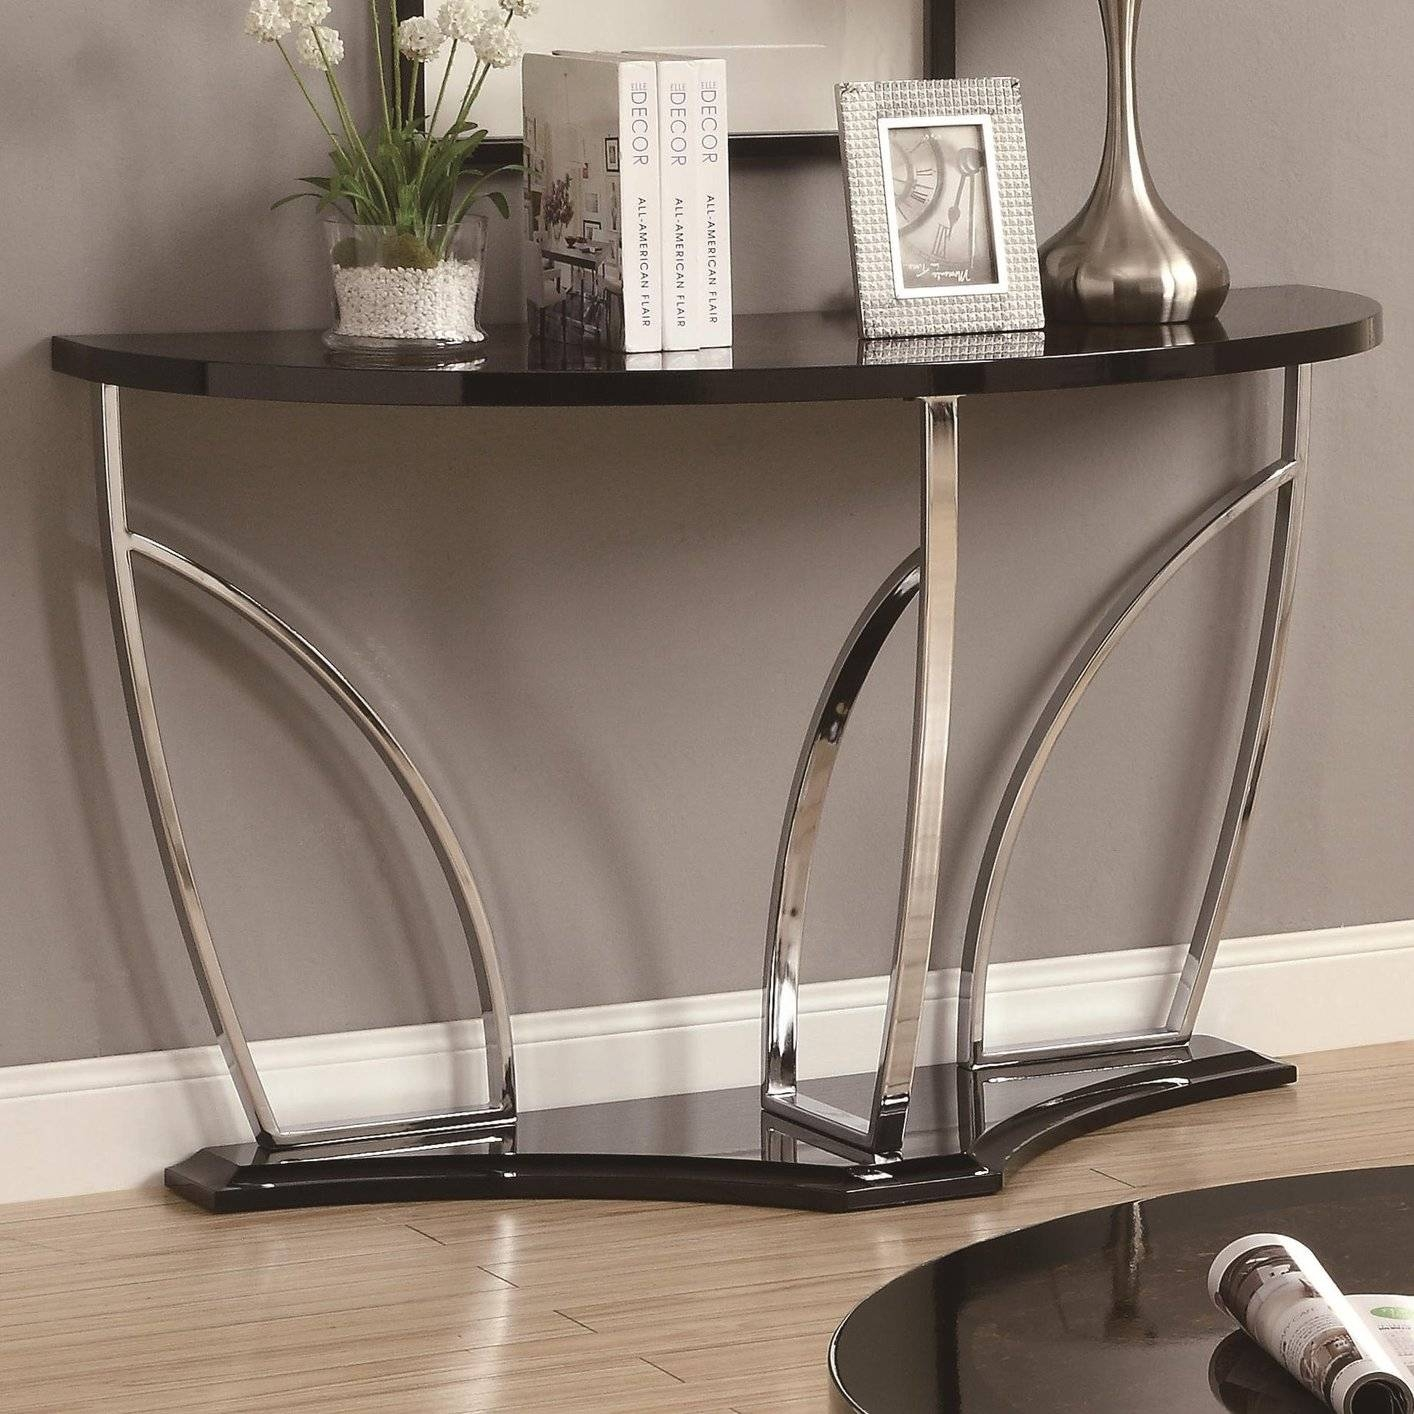 Black Marble Sofa Table – Steal A Sofa Furniture Outlet Los Angeles Ca For Chrome Sofa Tables (View 2 of 15)